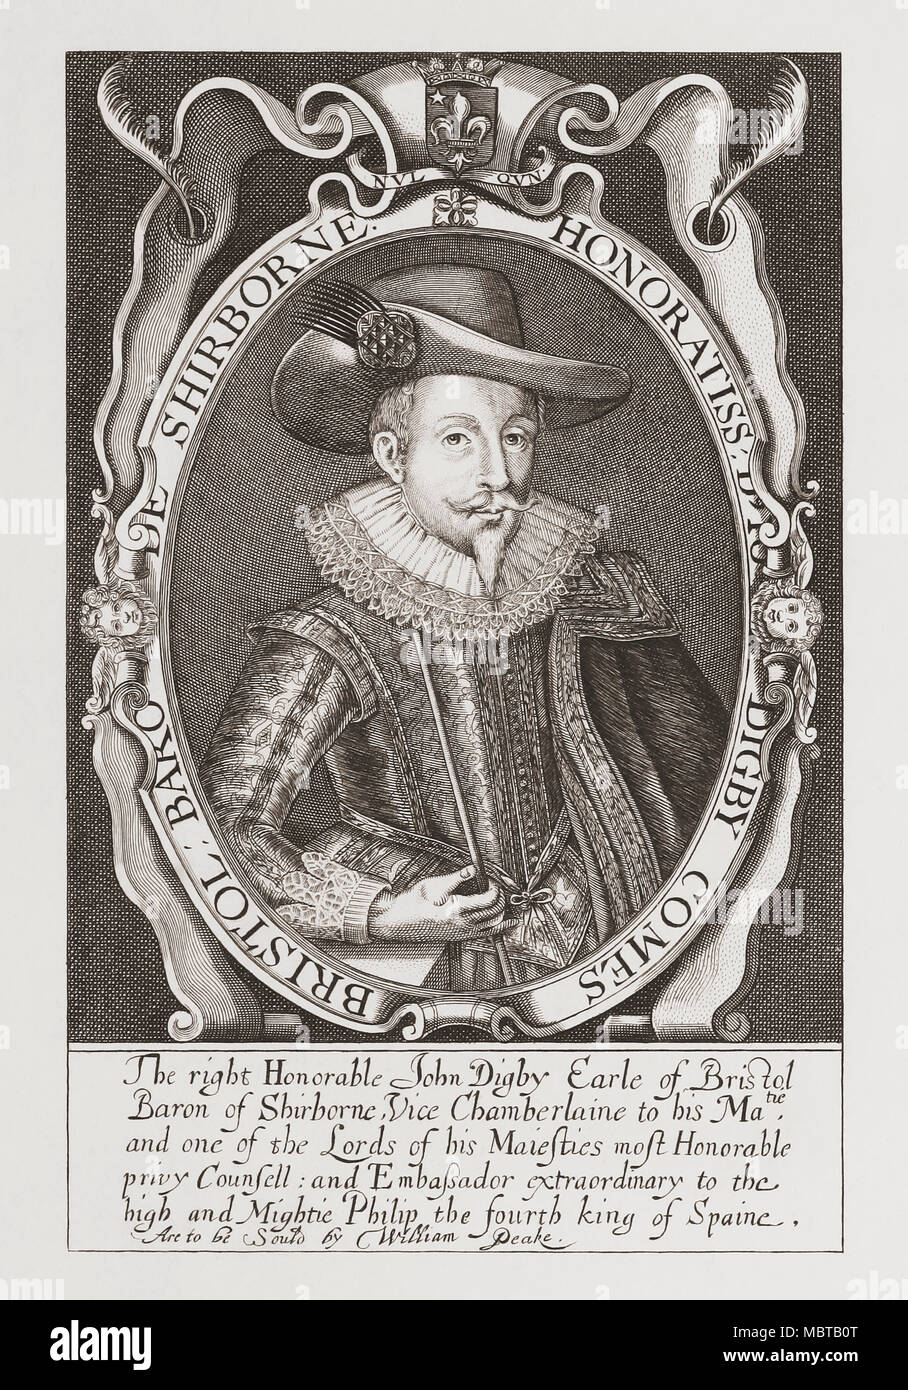 John Digby, 1st Earl of Bristol, 1580 - 1653.  English diplomat.   From Woodburn's Gallery of Rare Portraits, published 1816. - Stock Image